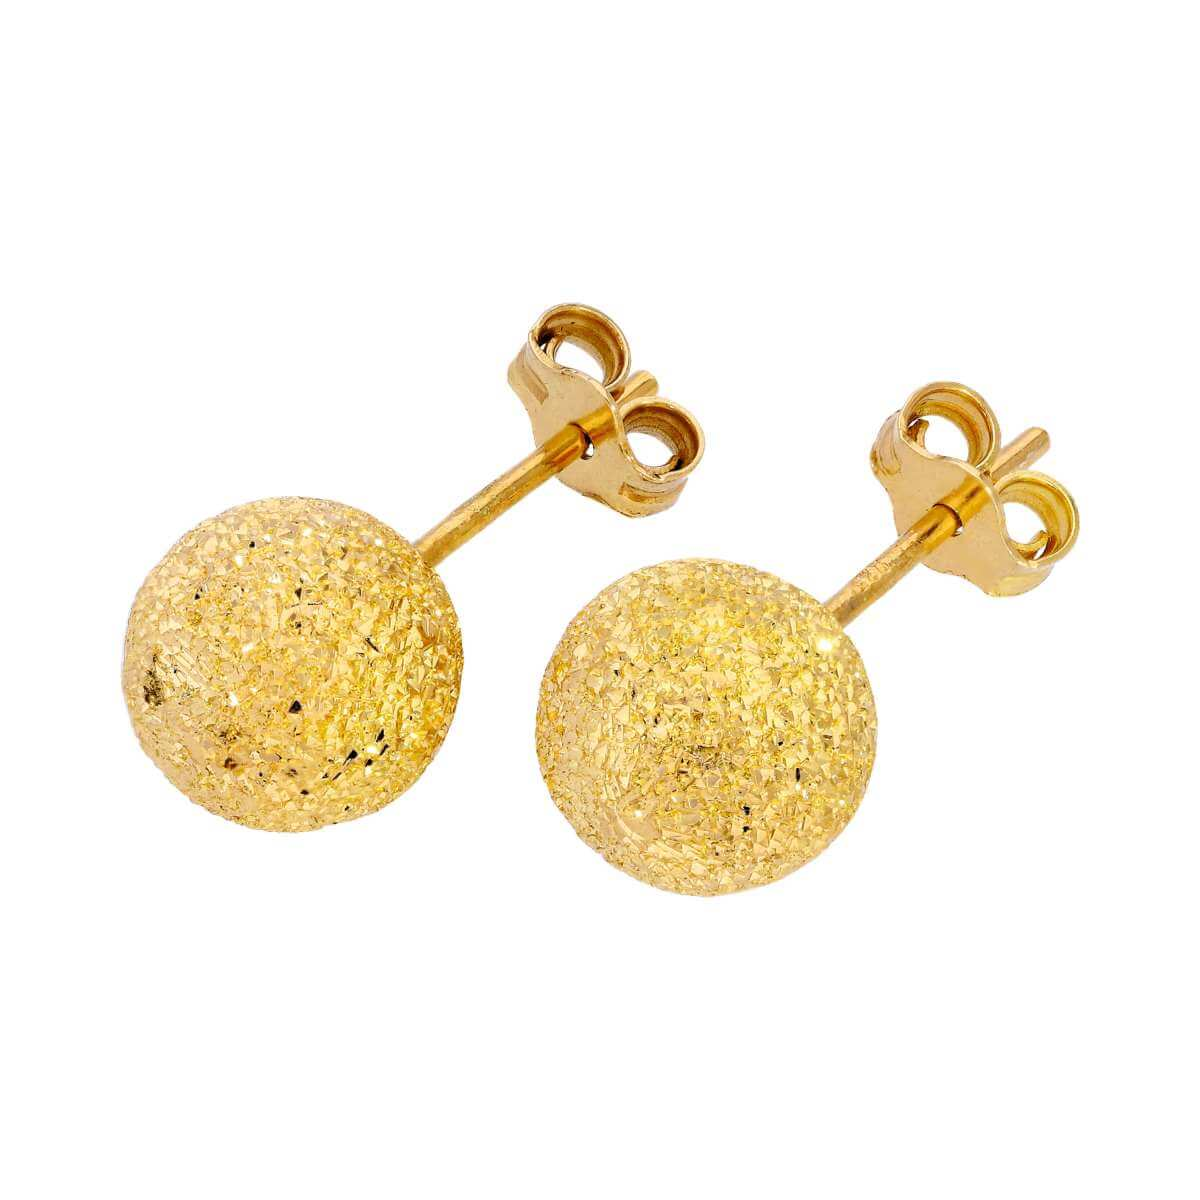 Gold Plated Frosted Sterling Silver 8mm Ball Stud Earrings